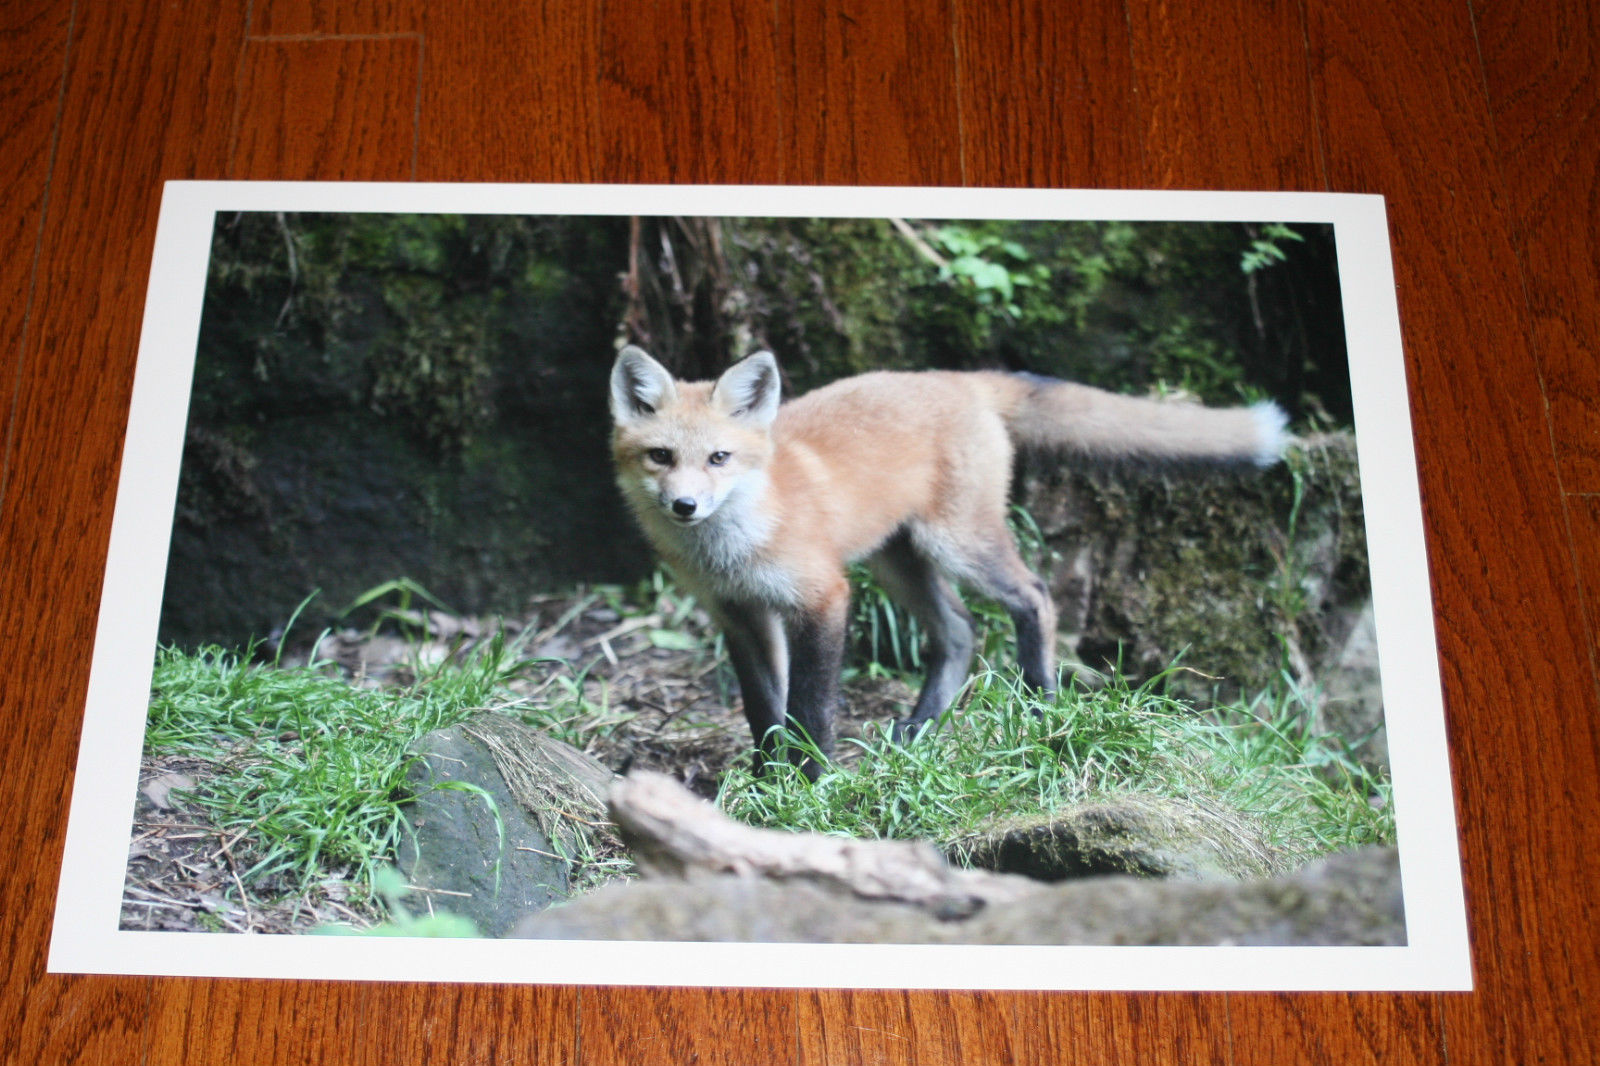 RED FOX KIT PHOTO PHOTOGRAPH 10 x 15